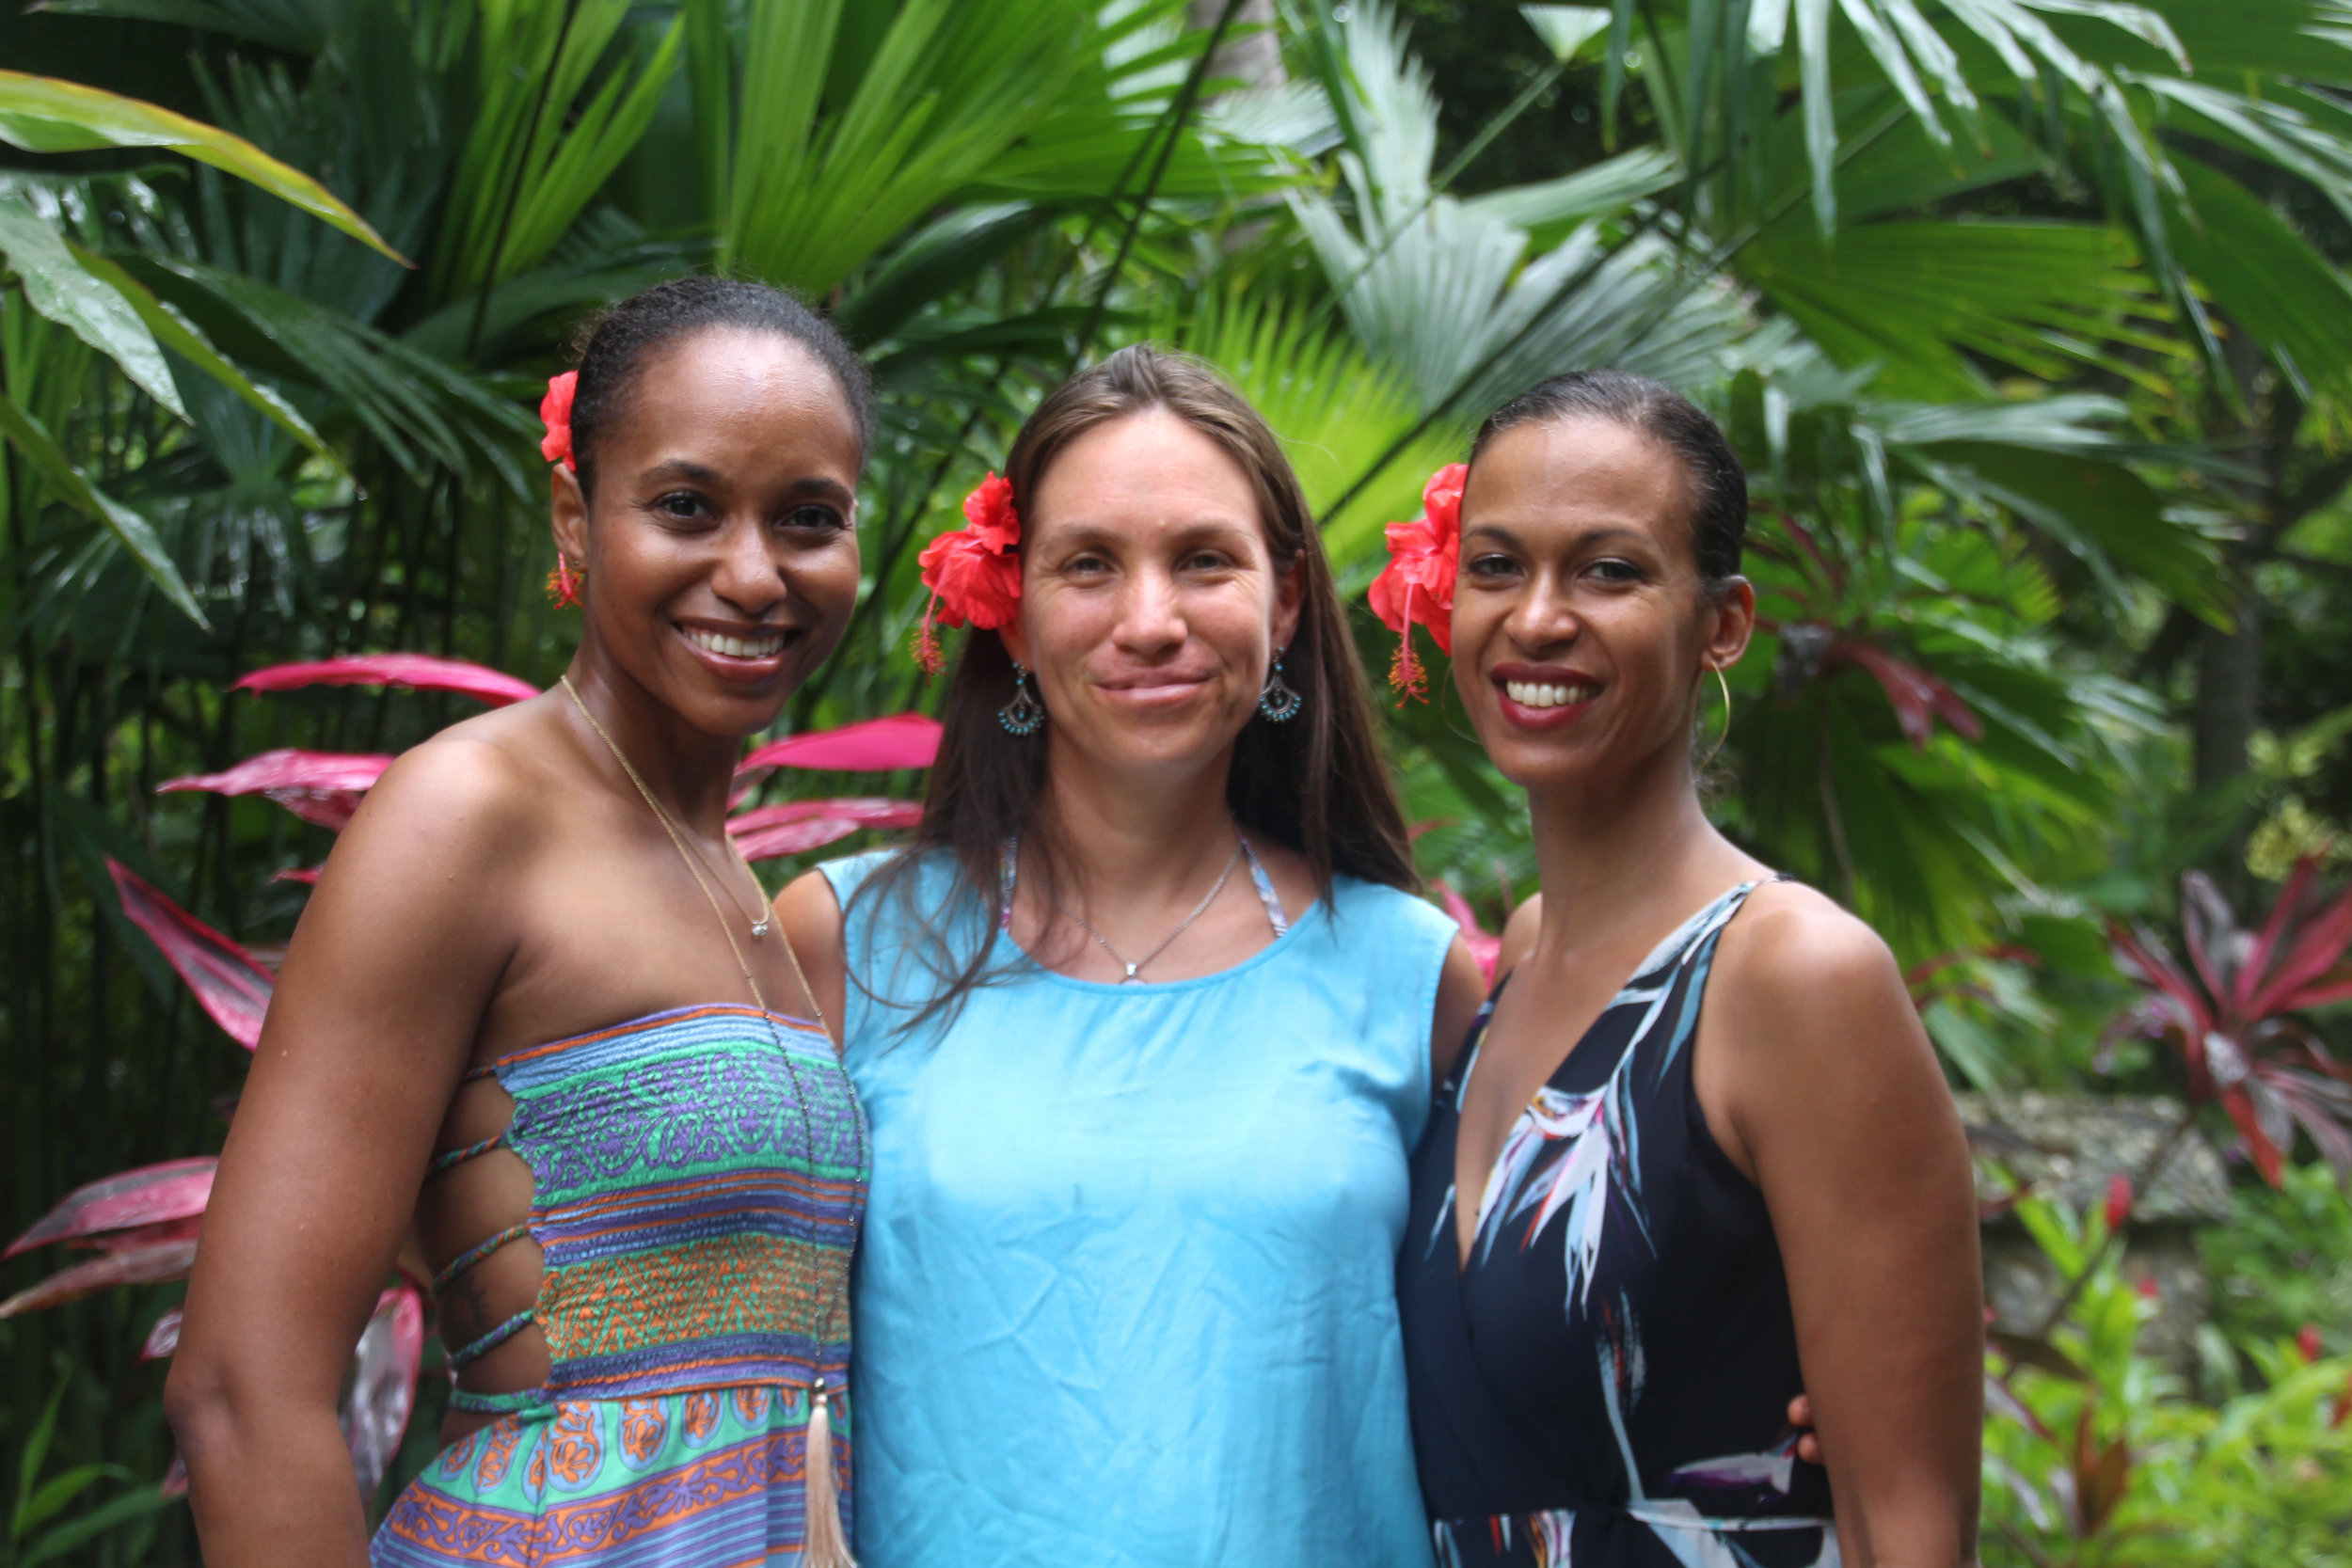 Rashia, Serena and Hope @ The Tropical Transformation Wellness Retreat in Colombia. Photo Credit: Amelie Pichard  @iconink.design